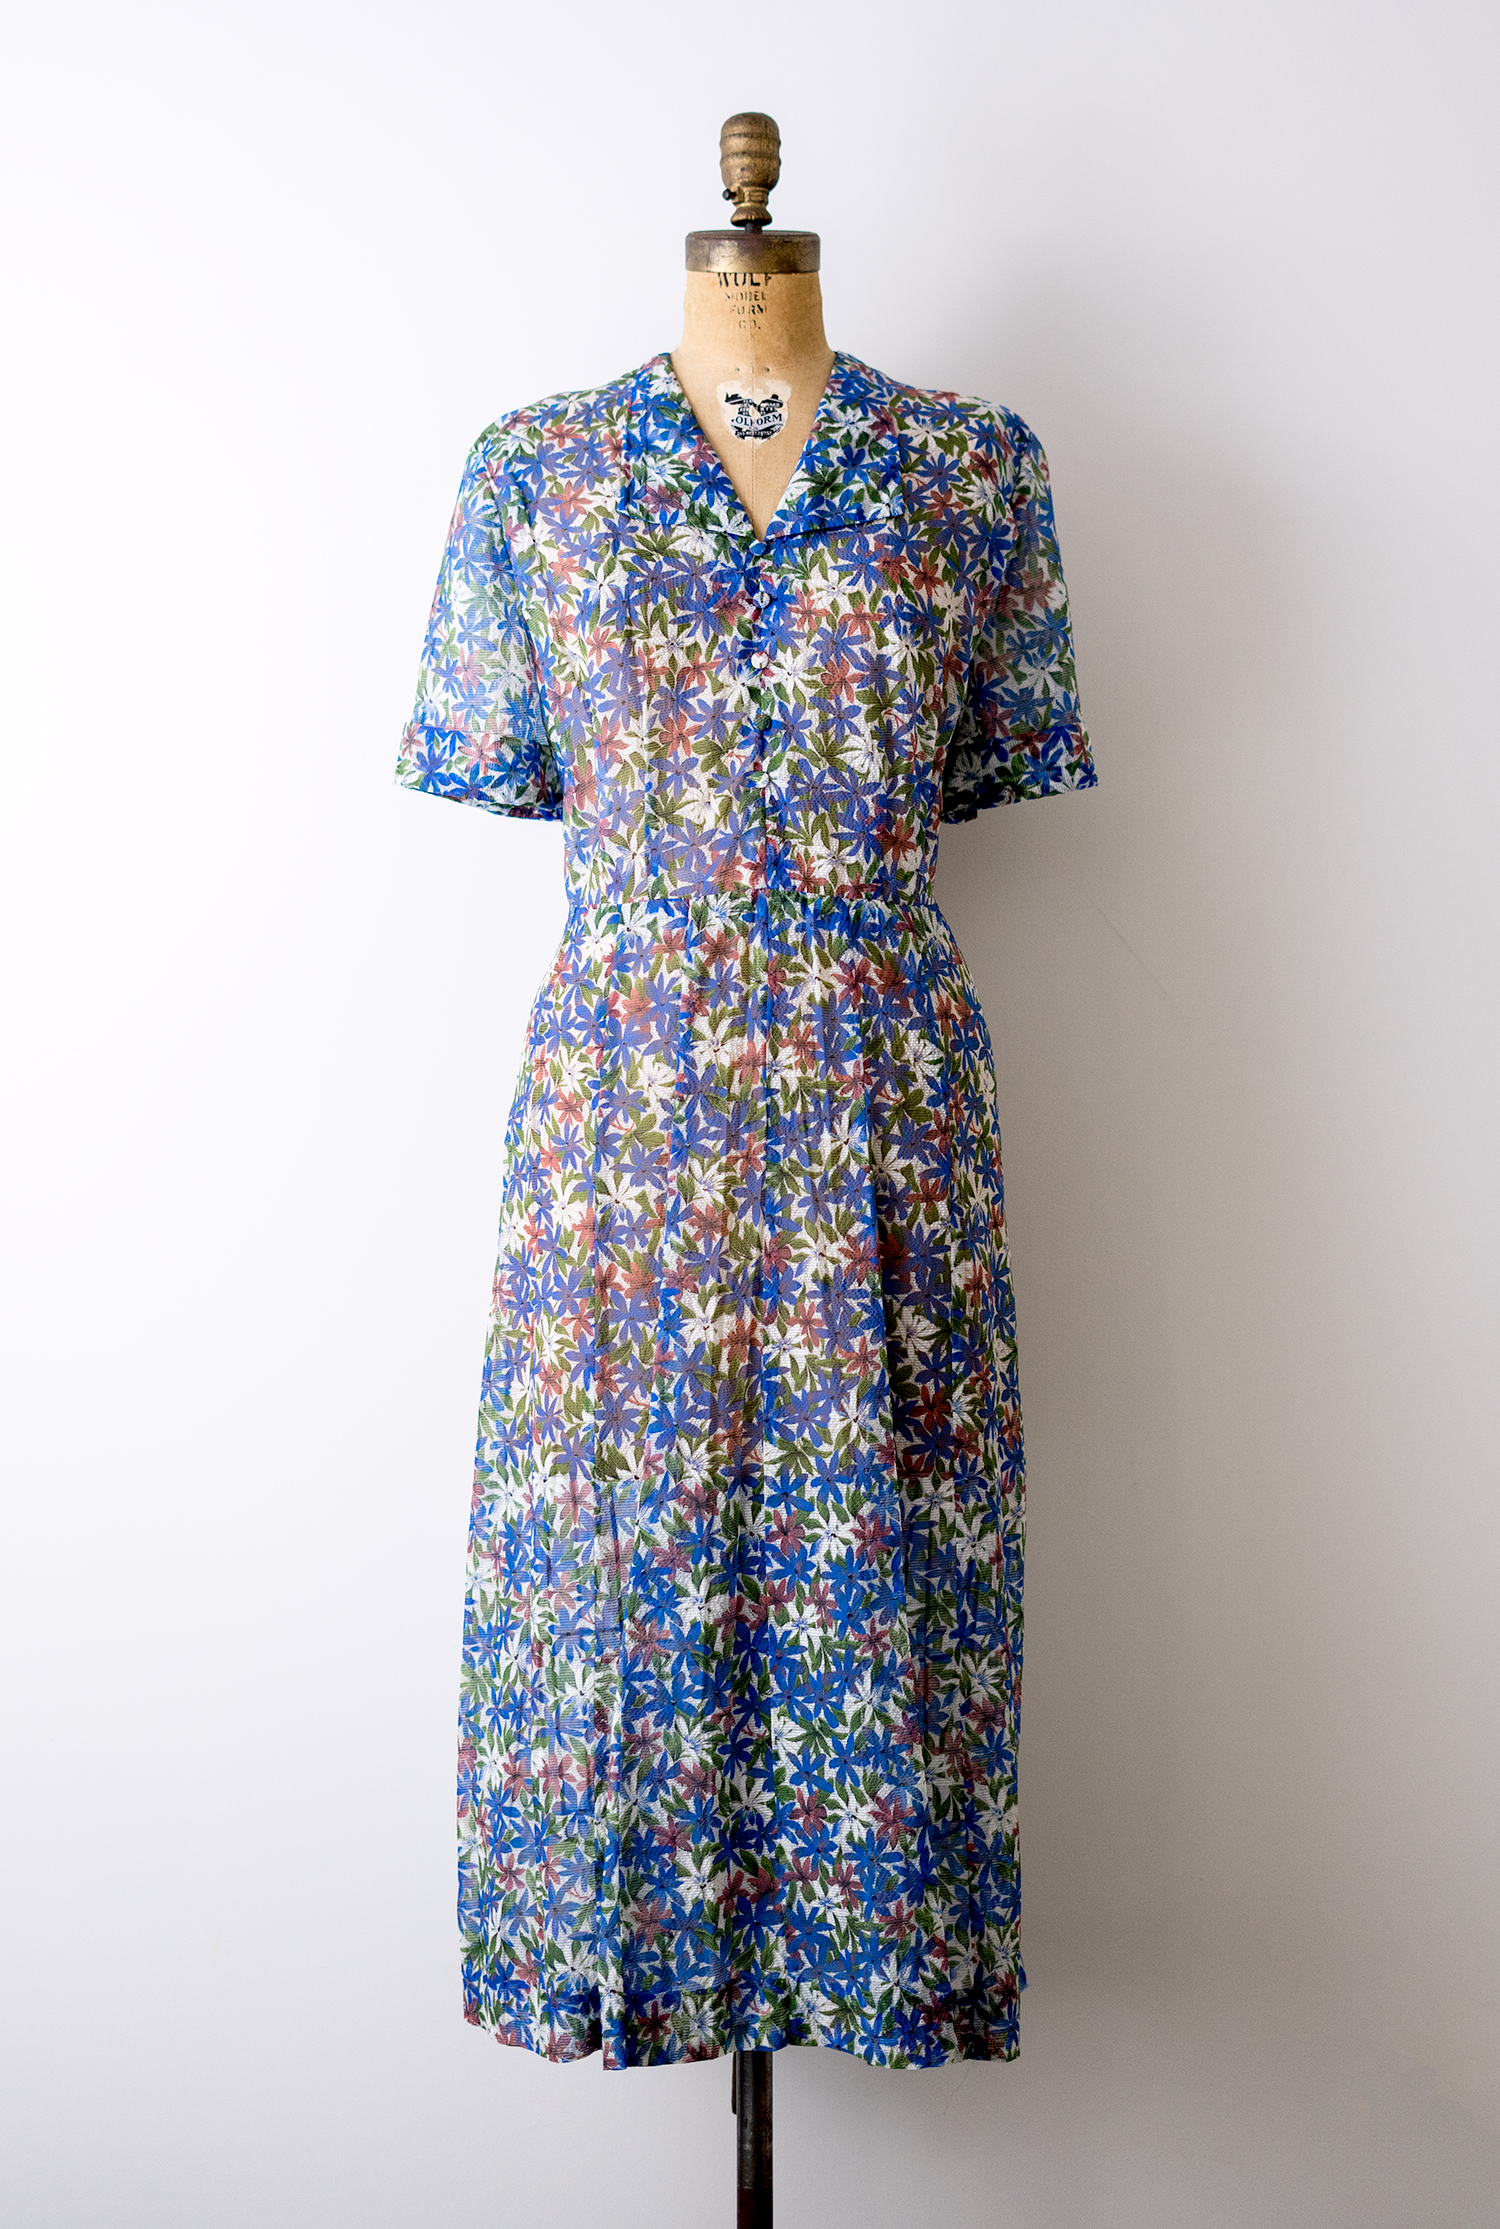 Vintage 1940's floral blue sheer dress by Heirloomen